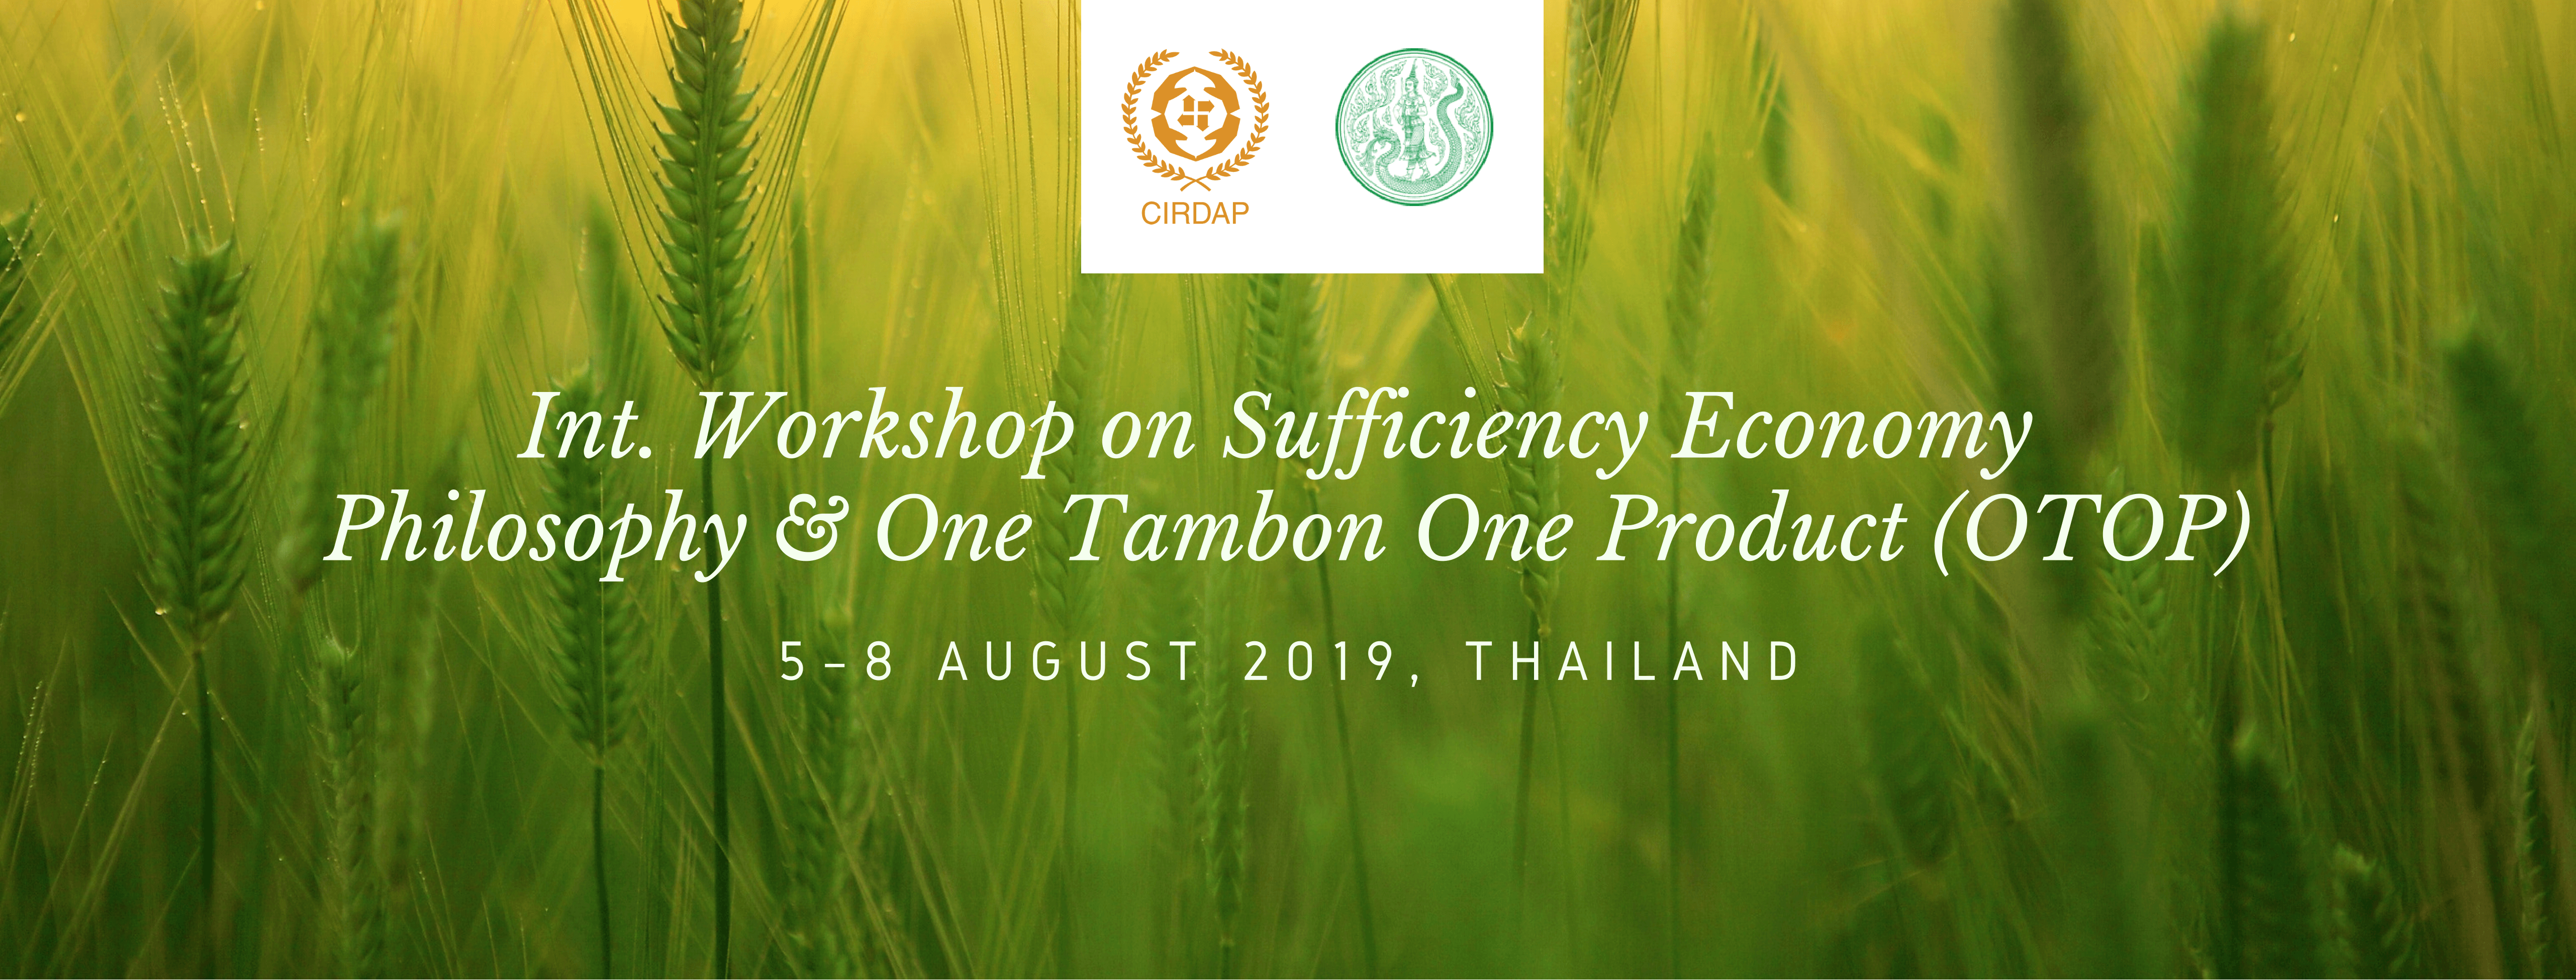 Int  Workshop on Sufficiency Economy Philosophy and One Tambon One